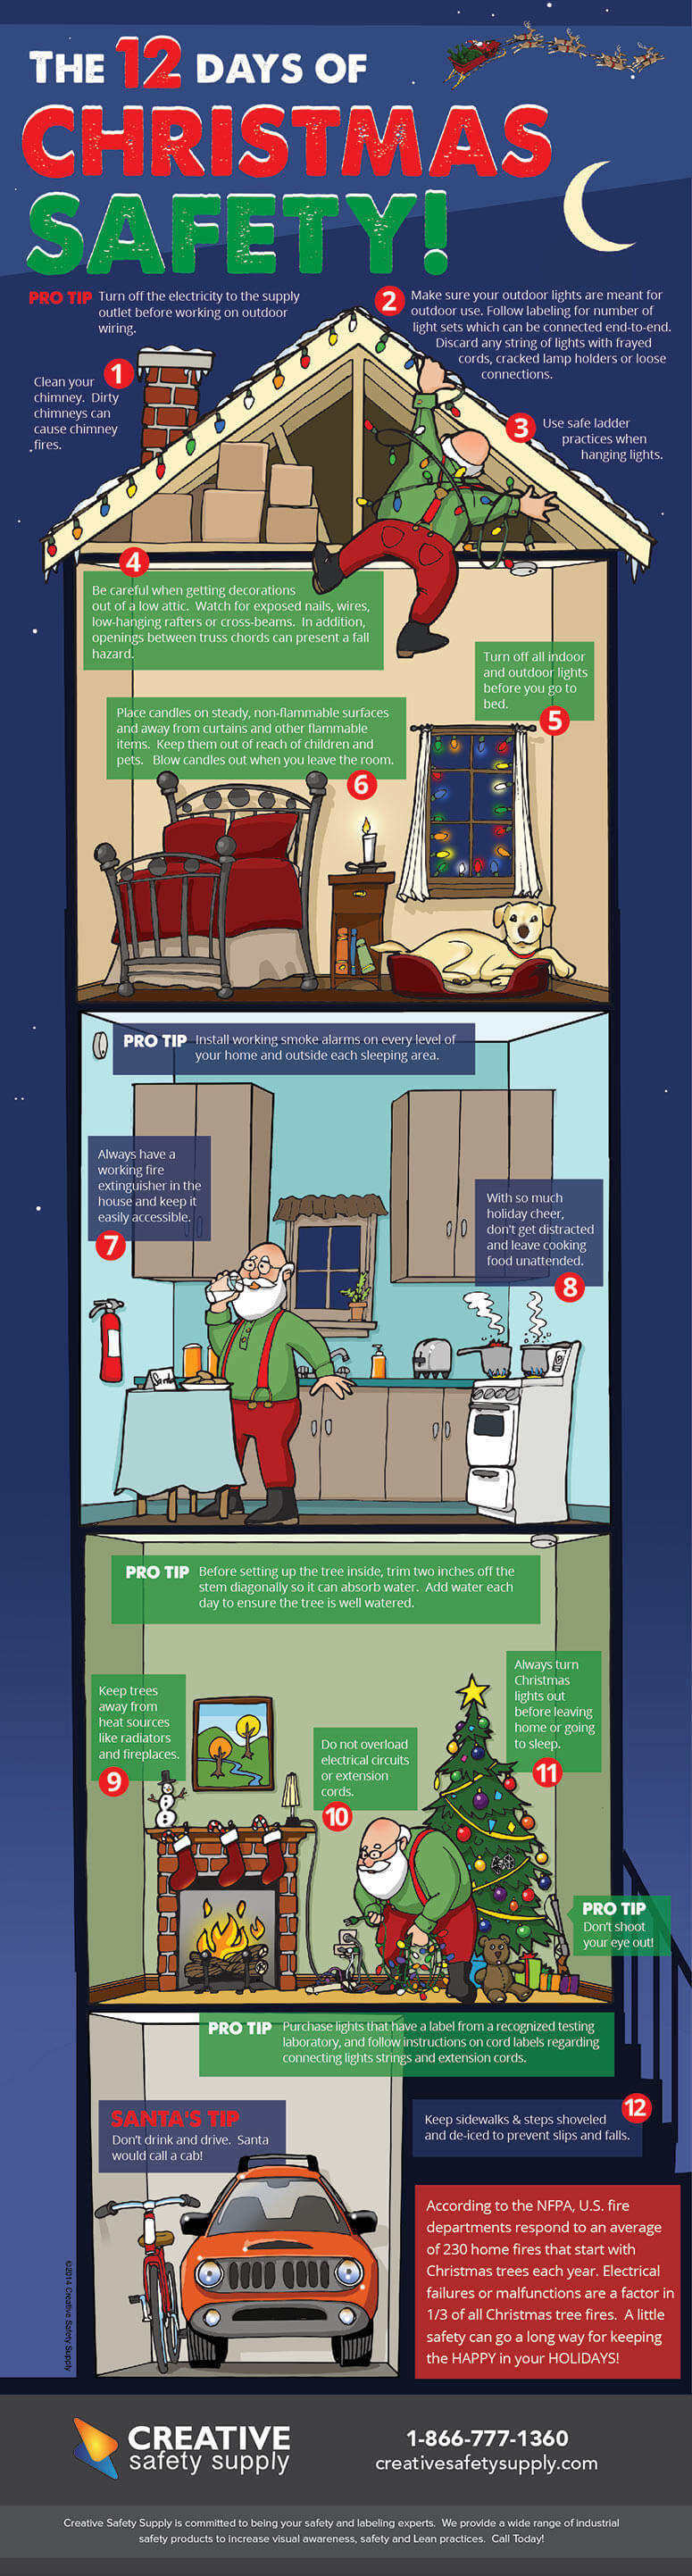 christmas-safety-infographic.jpg